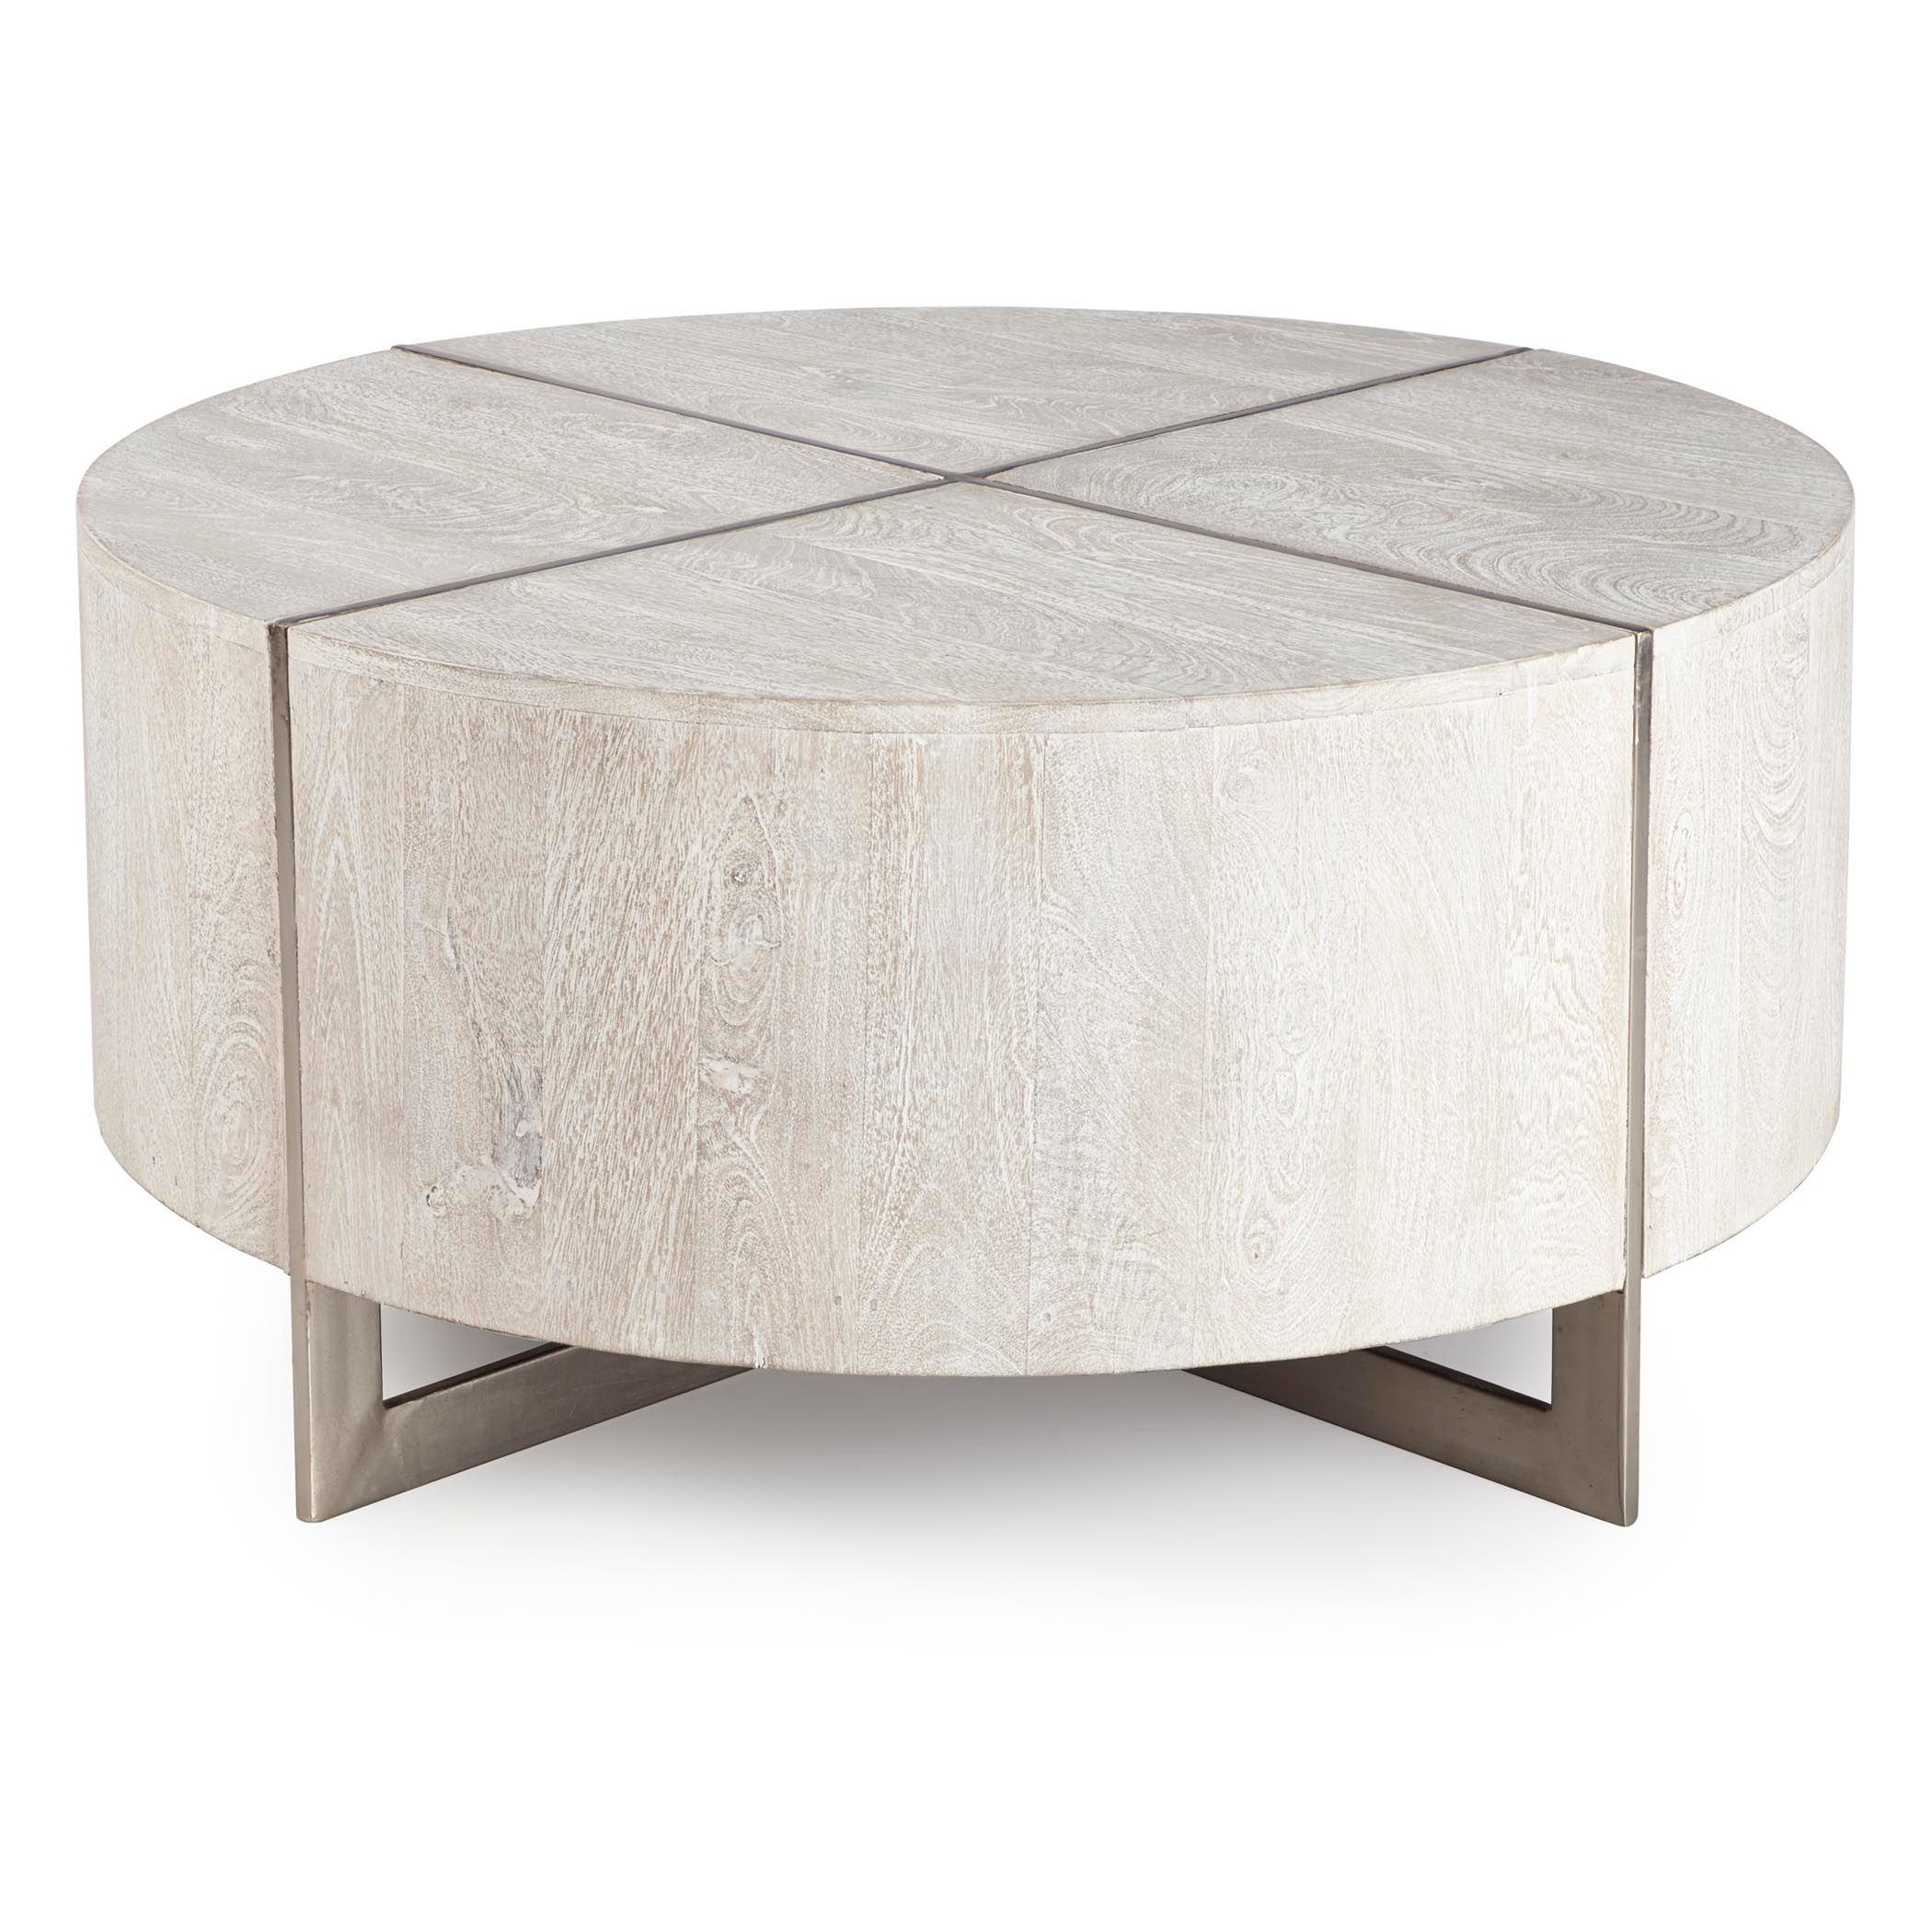 Clifton Round Coffee Table Best Sellers Collections Z Gallerie Round Ottoman Coffee Table Round Drum Coffee Table Round Coffee Table [ 2100 x 2100 Pixel ]